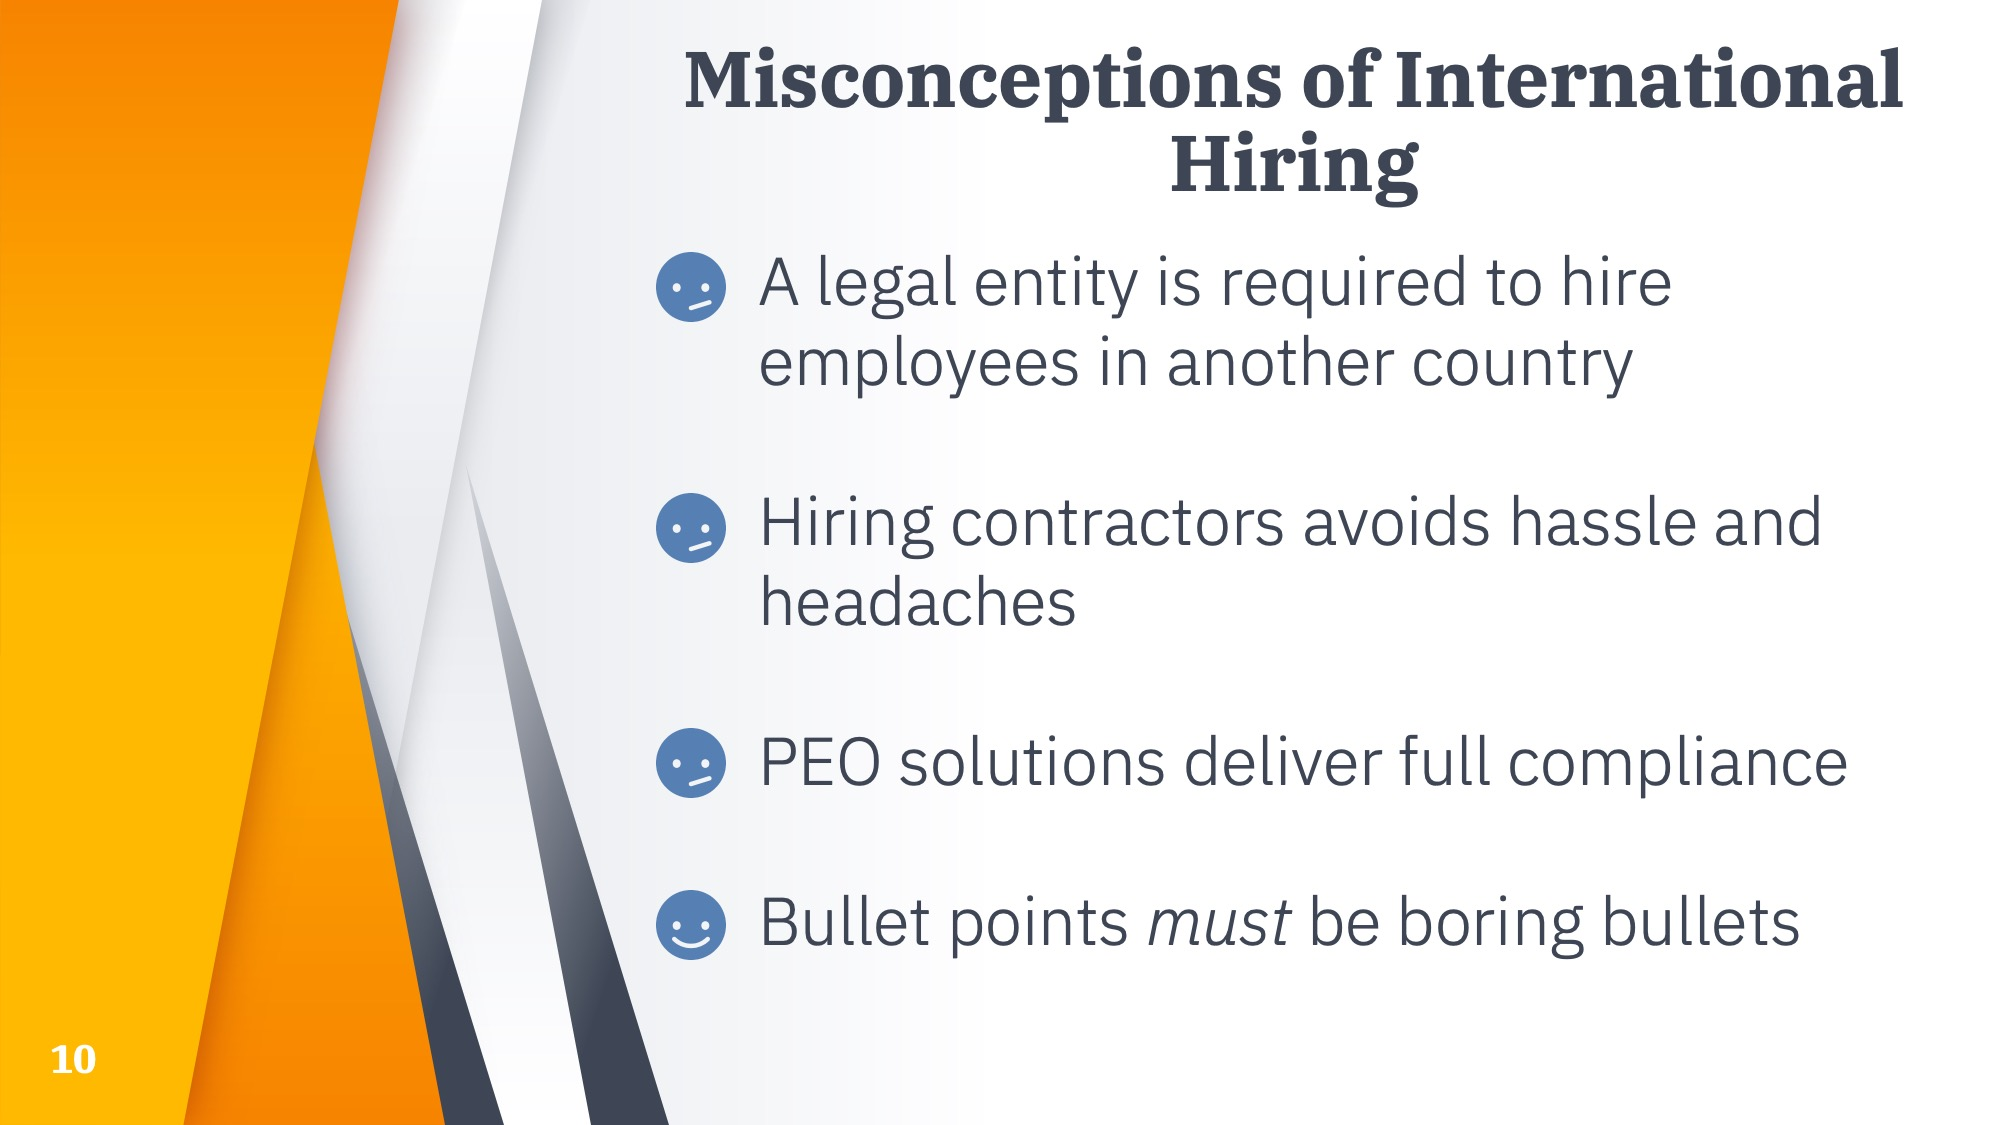 International hiring - misconceptions